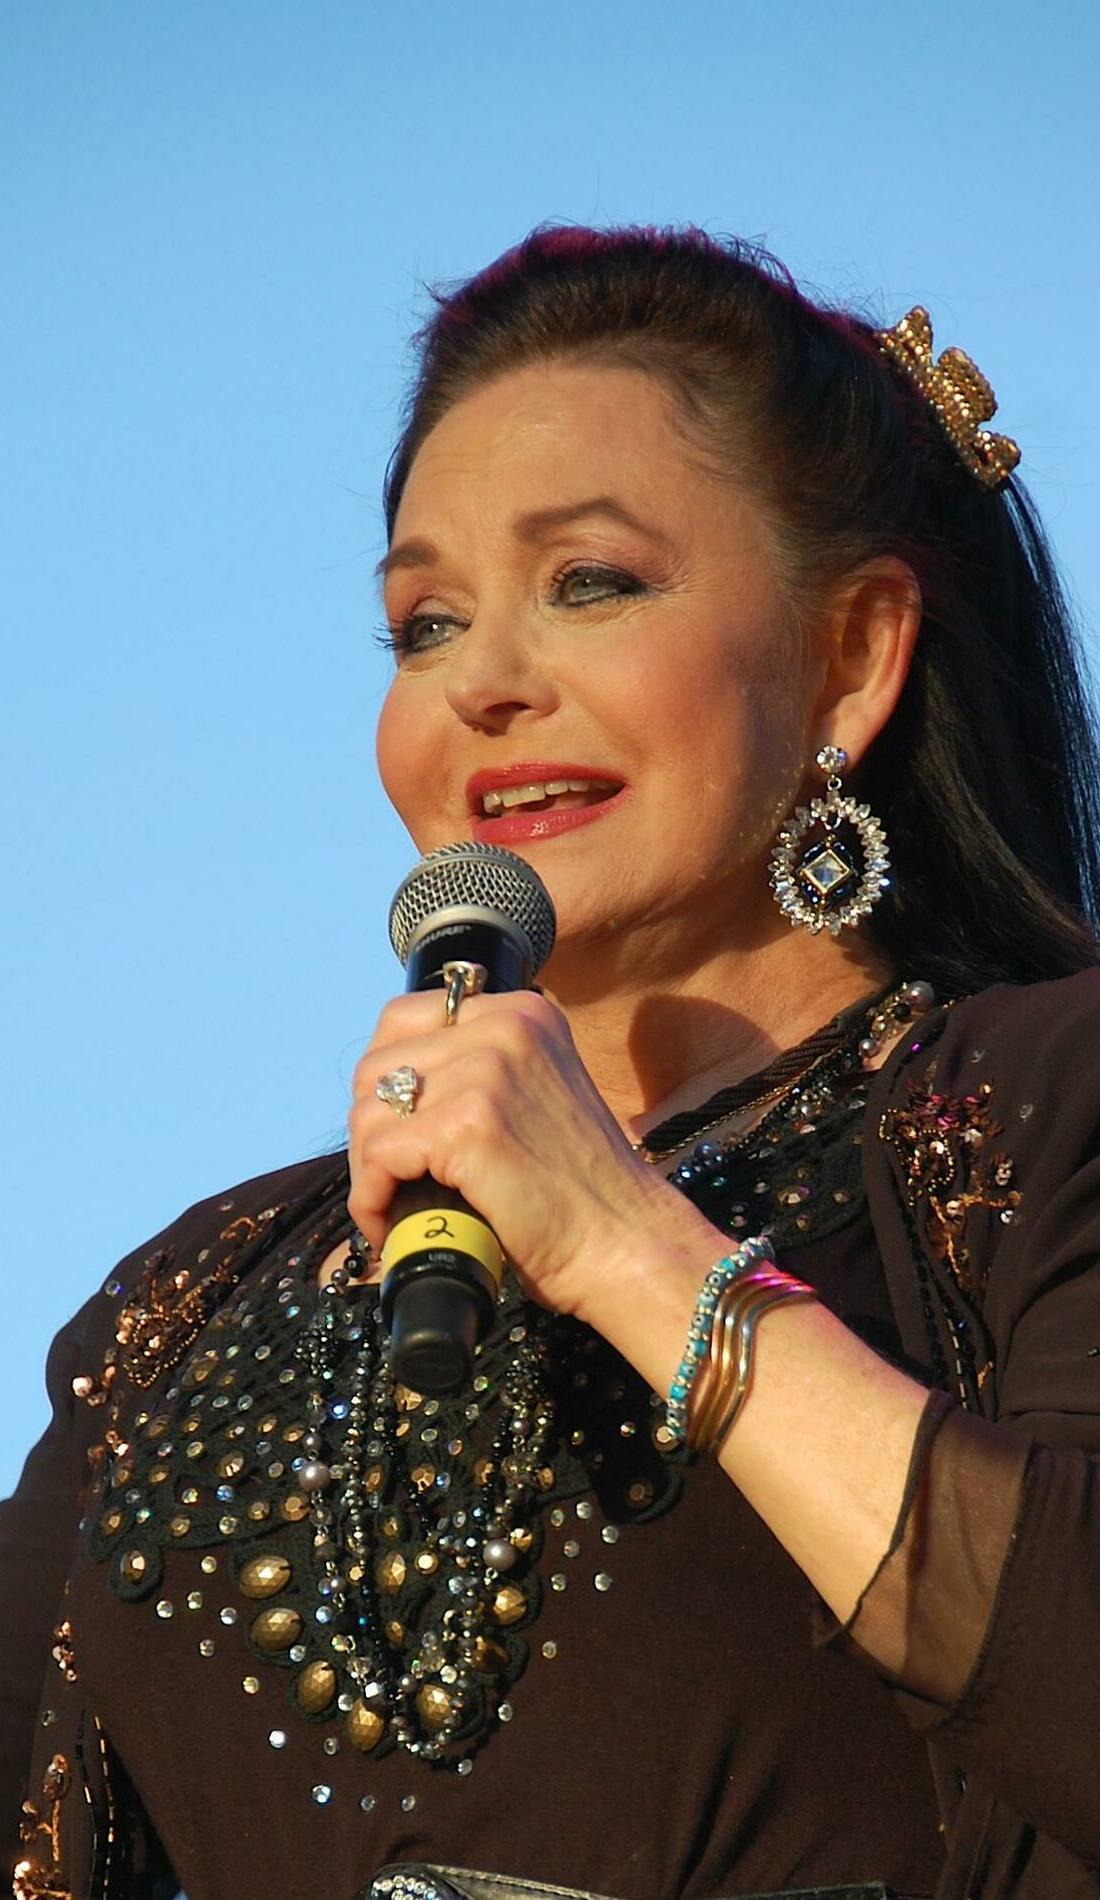 A Crystal Gayle live event